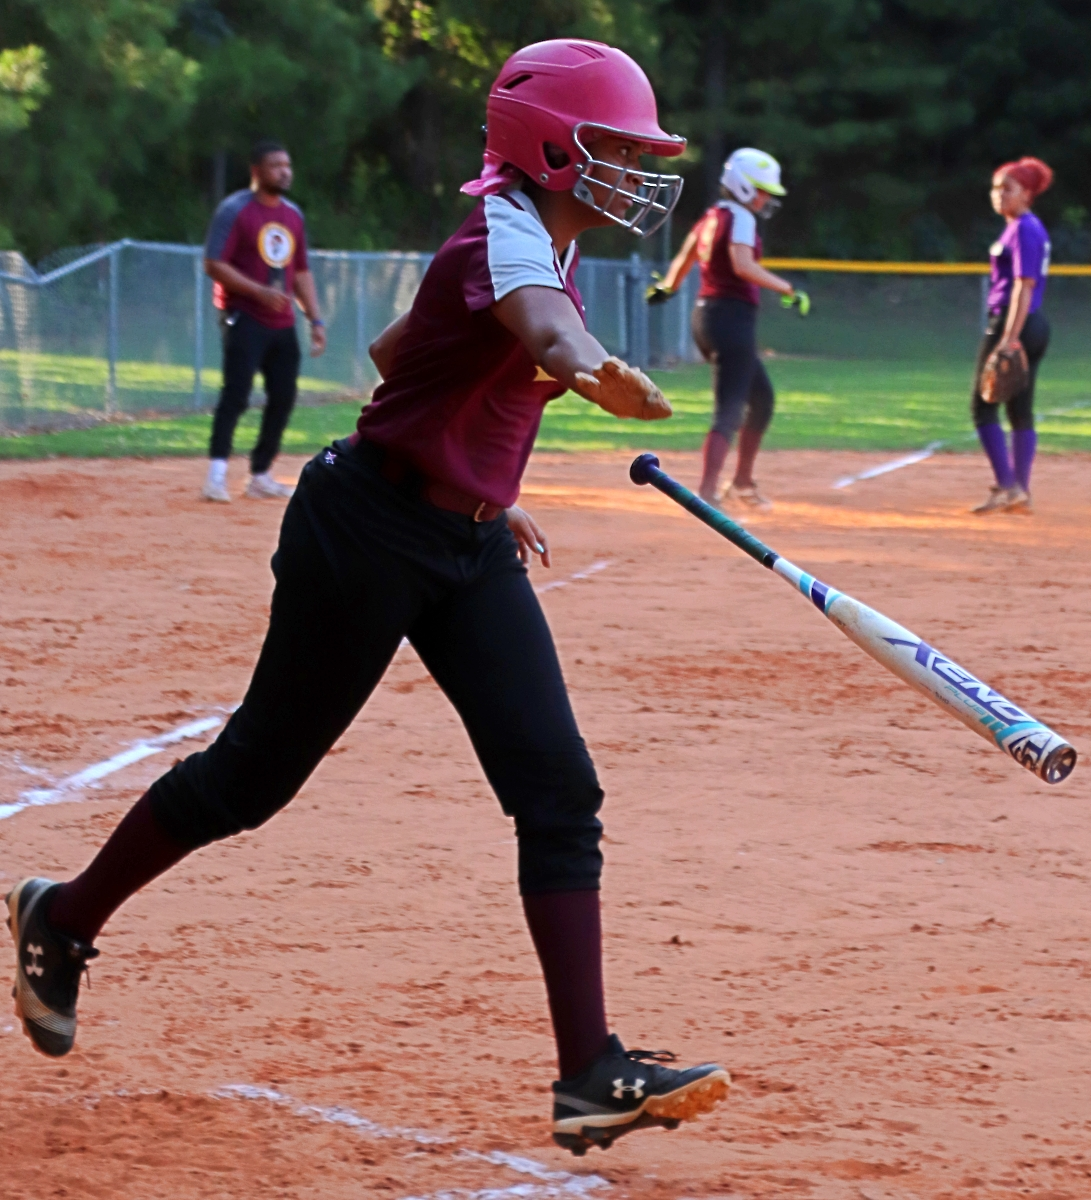 Tucker's Mattie Jenkins drew a bases-loaded walk to drive in one of the Tigers' two runs. (Photo by Mark Brock)